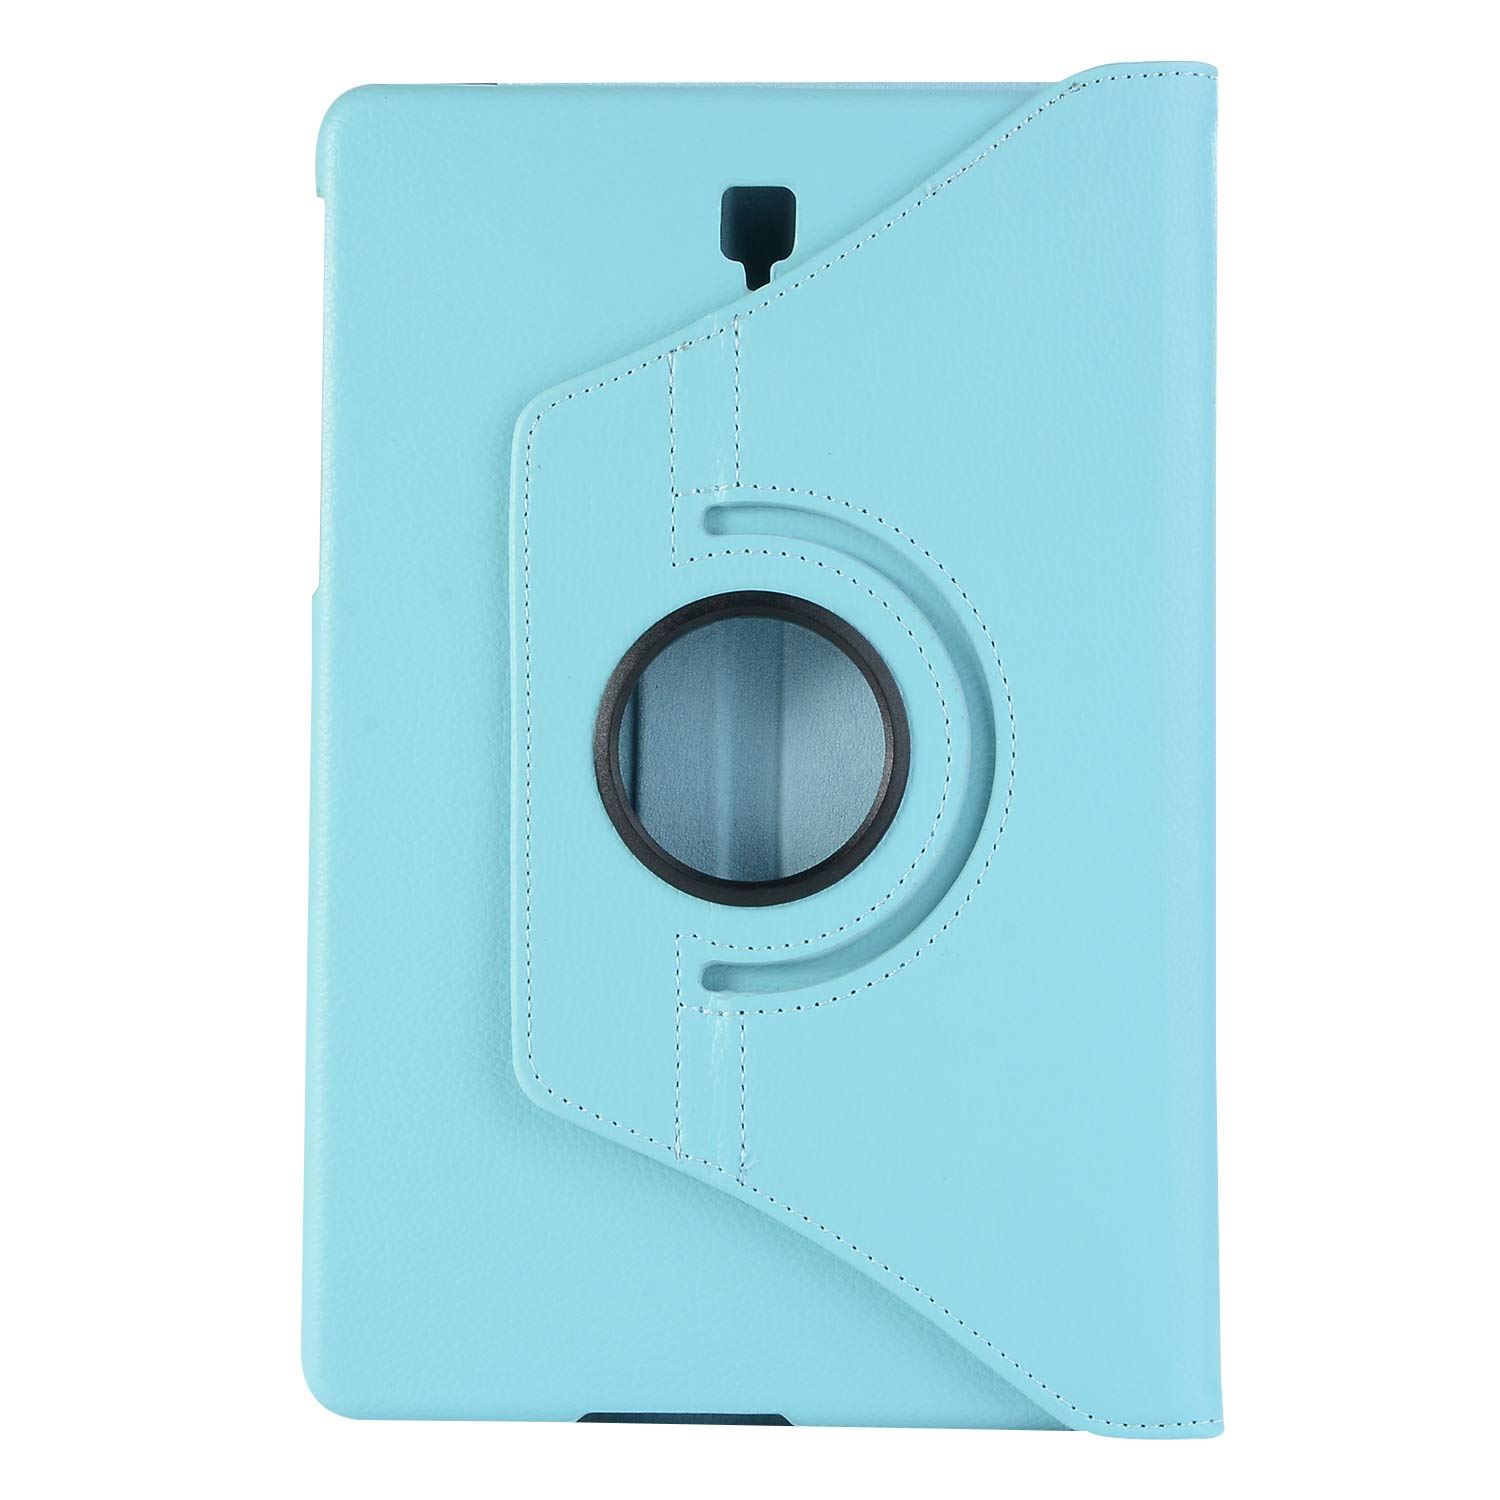 Samsung Galaxy Tab S4 10.5 Case, Businda PU Leather Full-body Rugged Protective Case with 360 Degree Rotatable Hand Strap Built-in Kickstand 2018 Galaxy Tab S4 10.5 inch Tablet-Light Blue